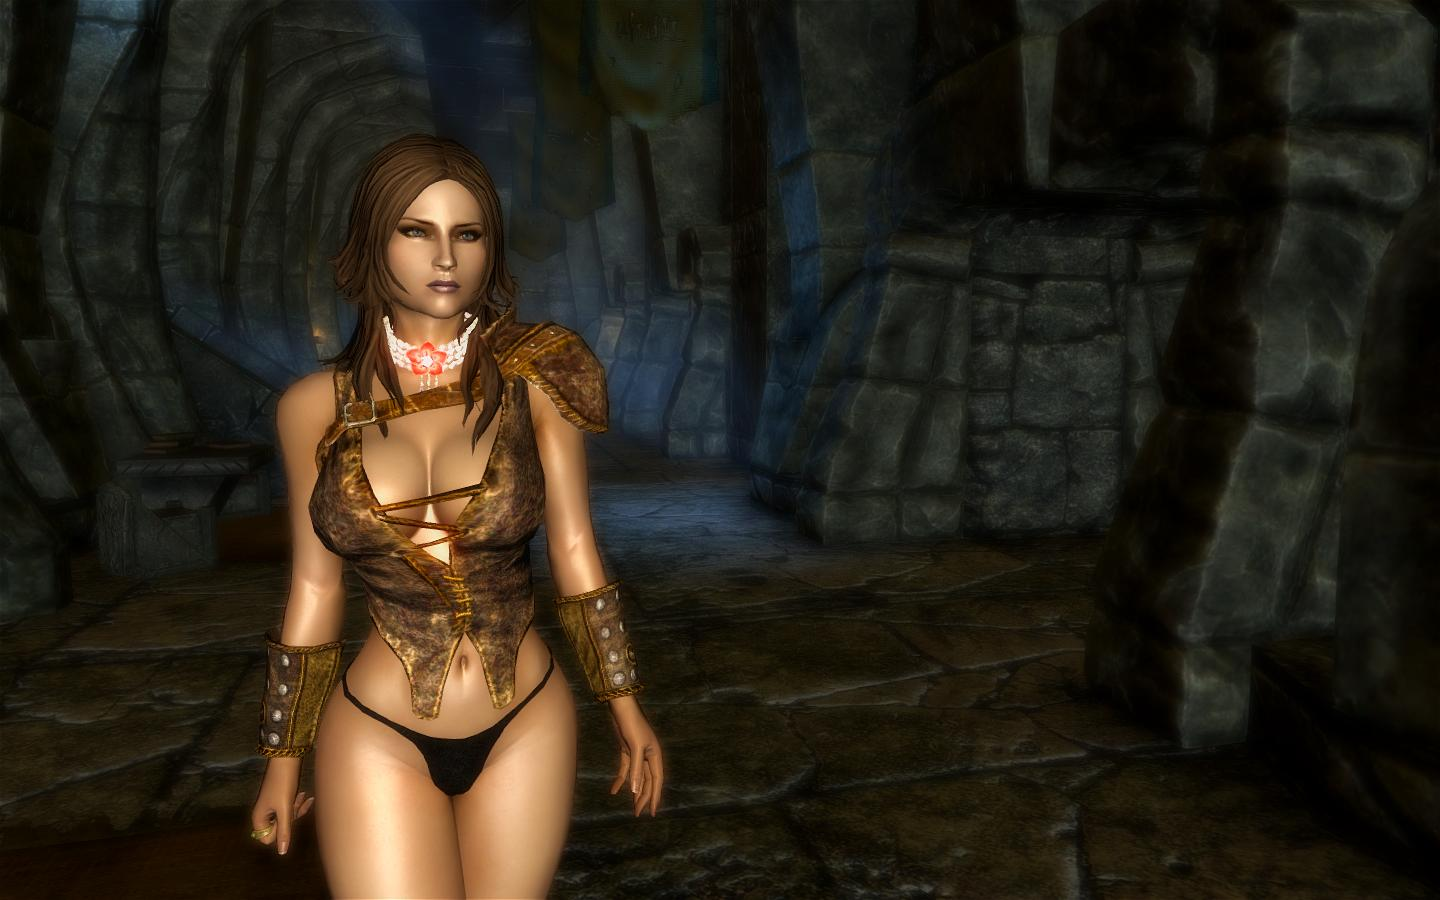 Nude females mod skyrim steam workshop pornos clip